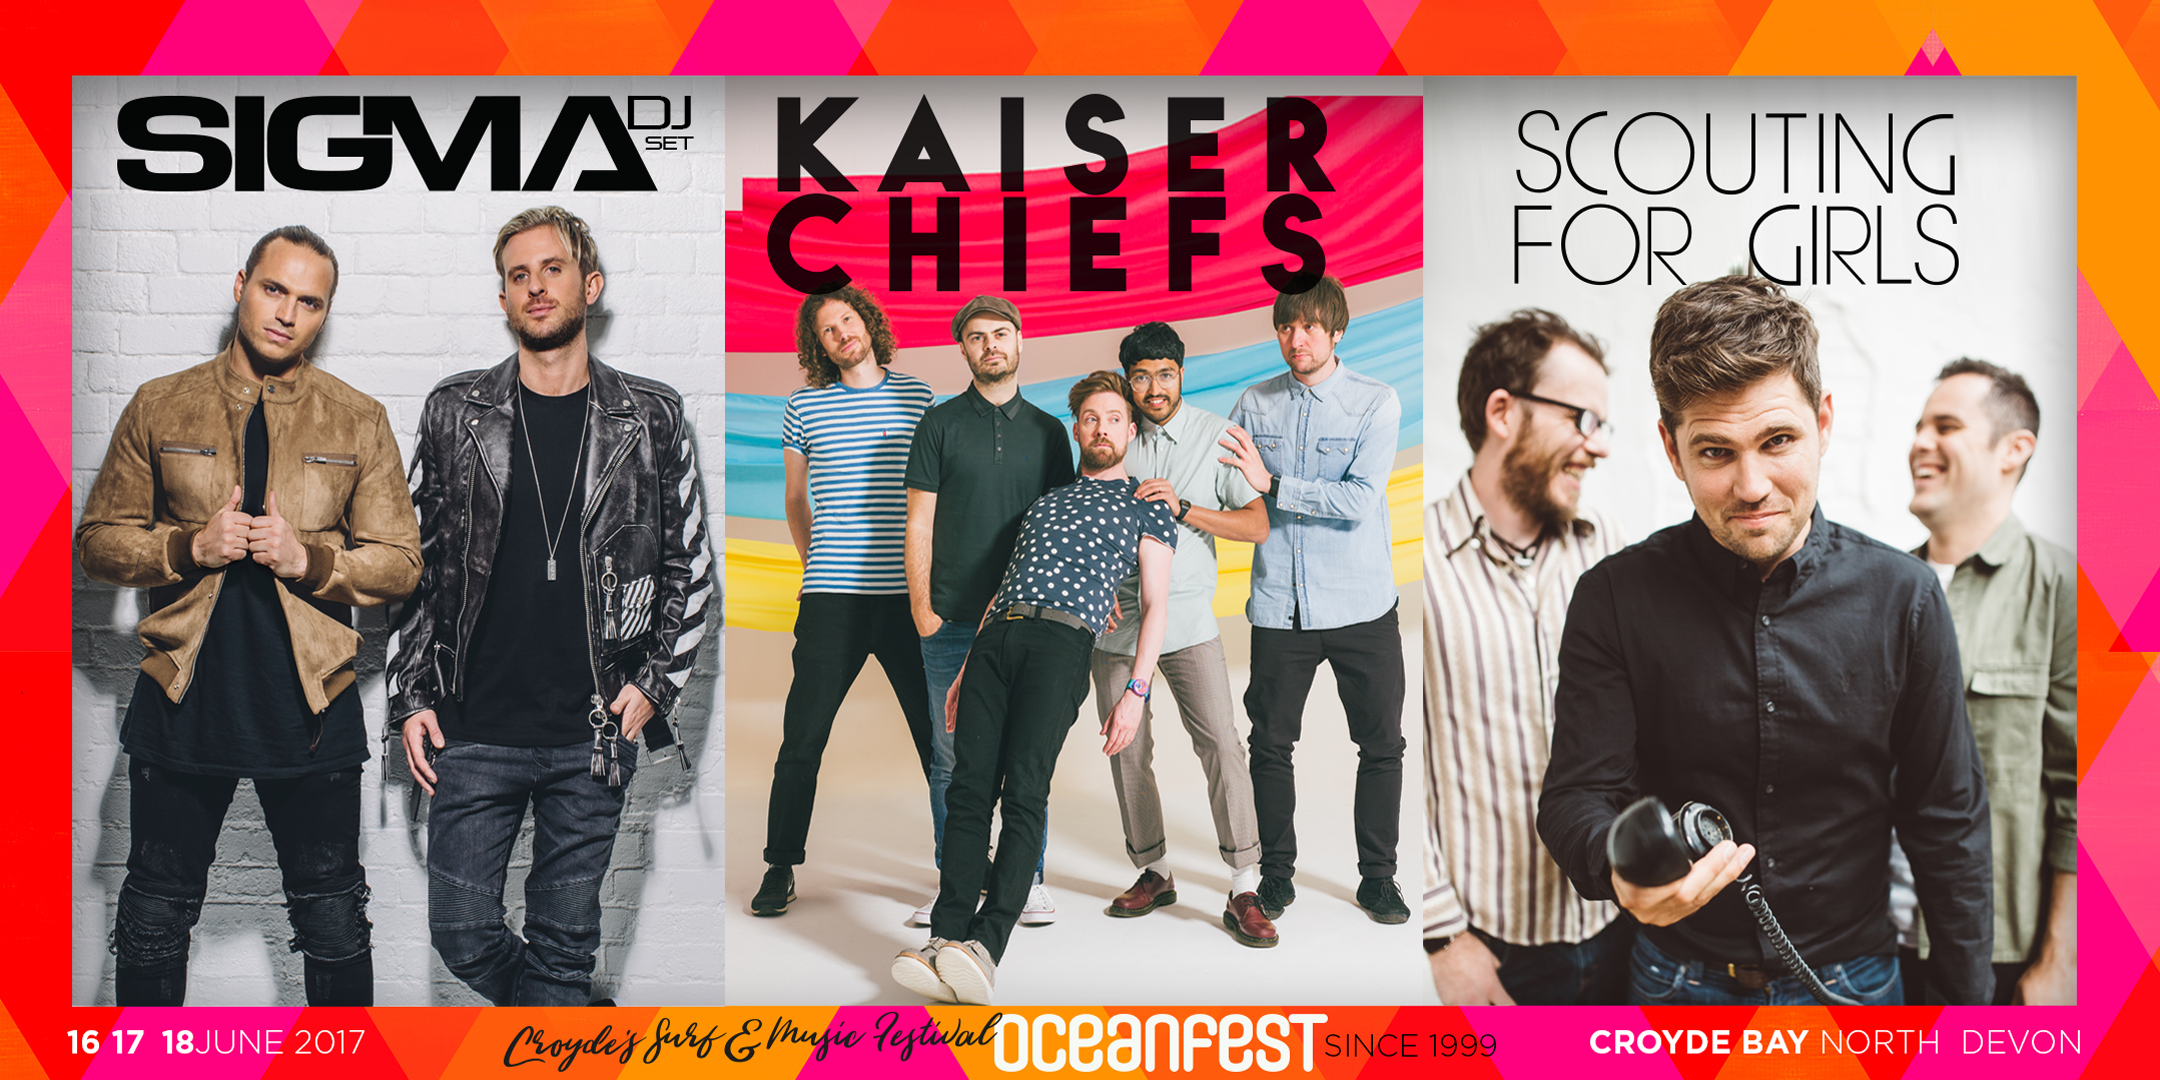 Kaiser Chiefs, Sigma & Scouting for girls